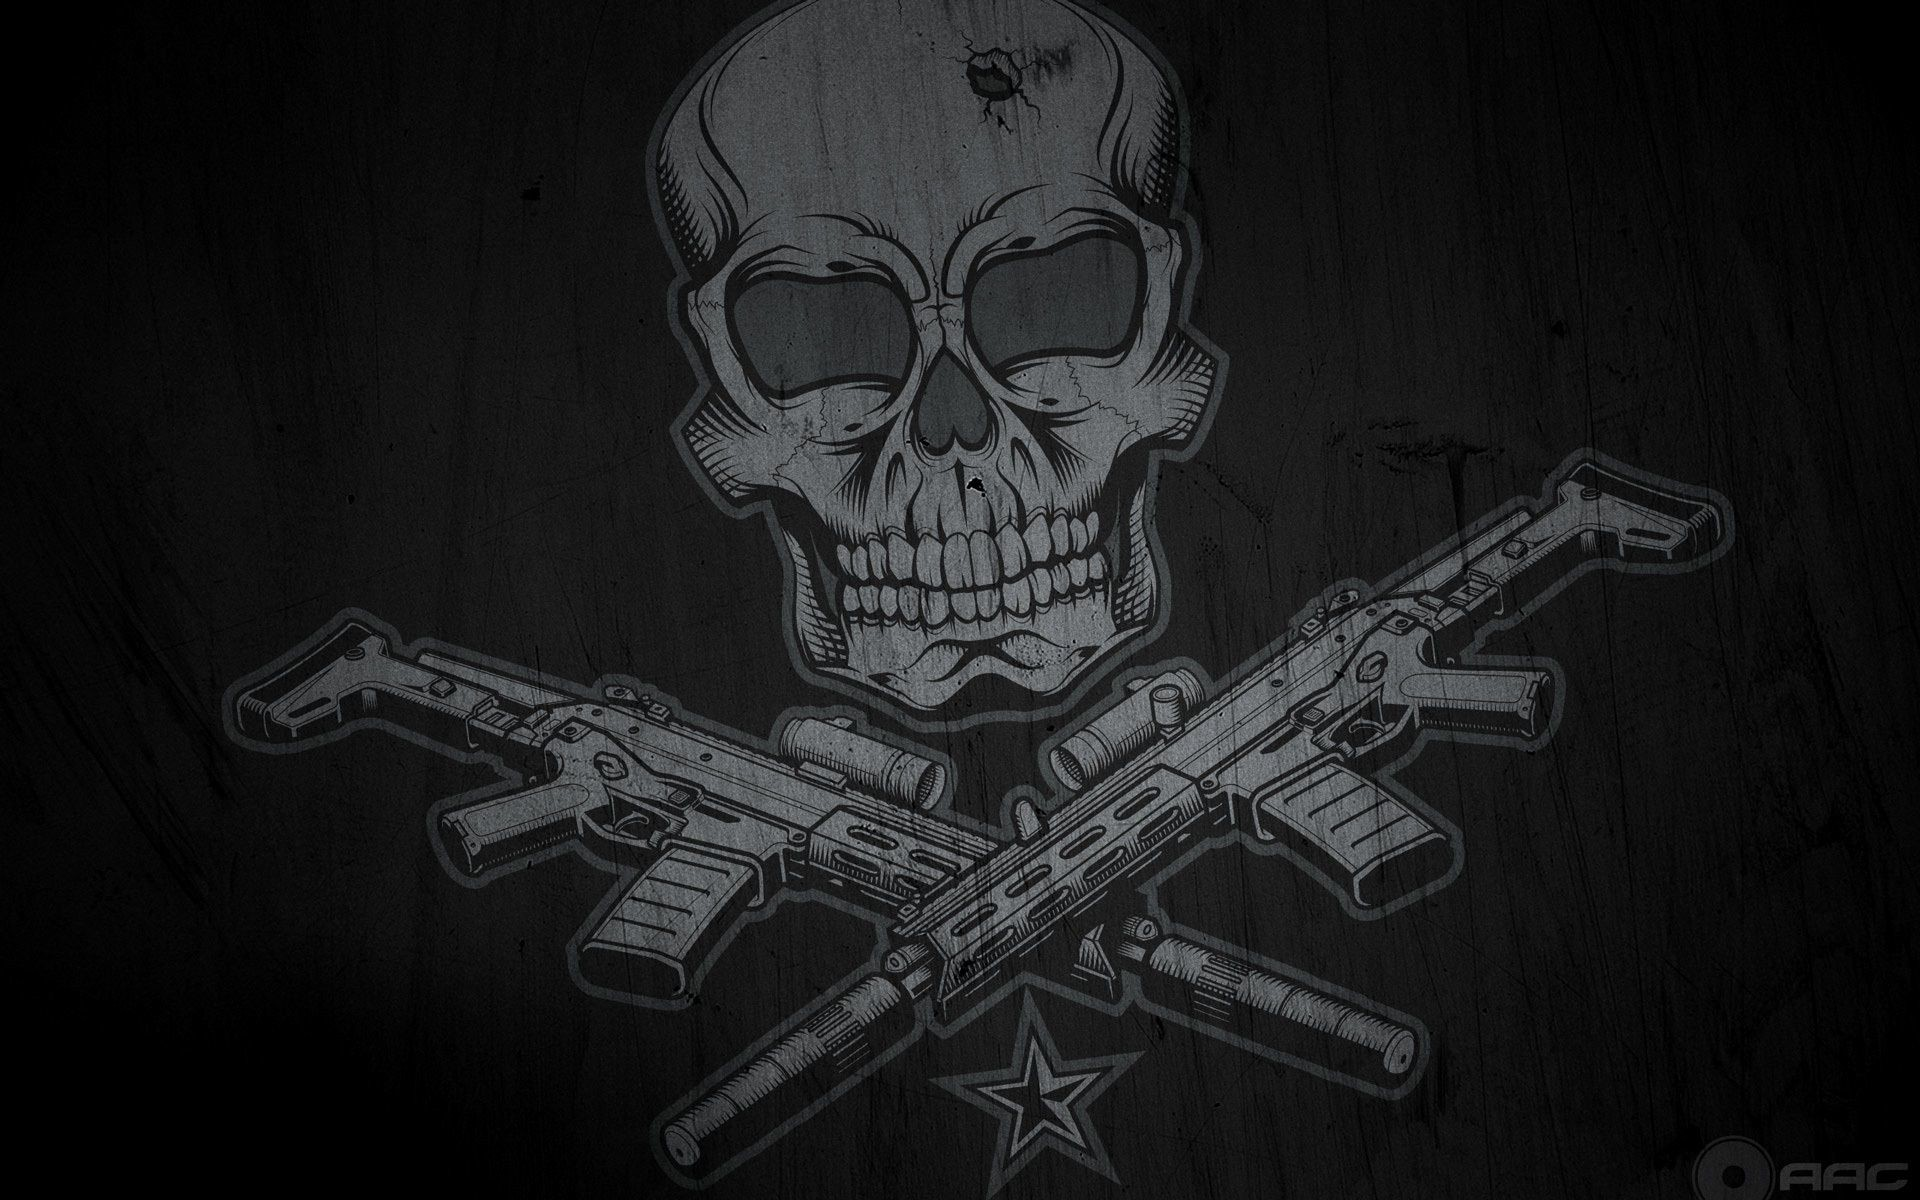 Skulls And Guns Tattoos: Skulls And Guns Wallpaper (59+ Images